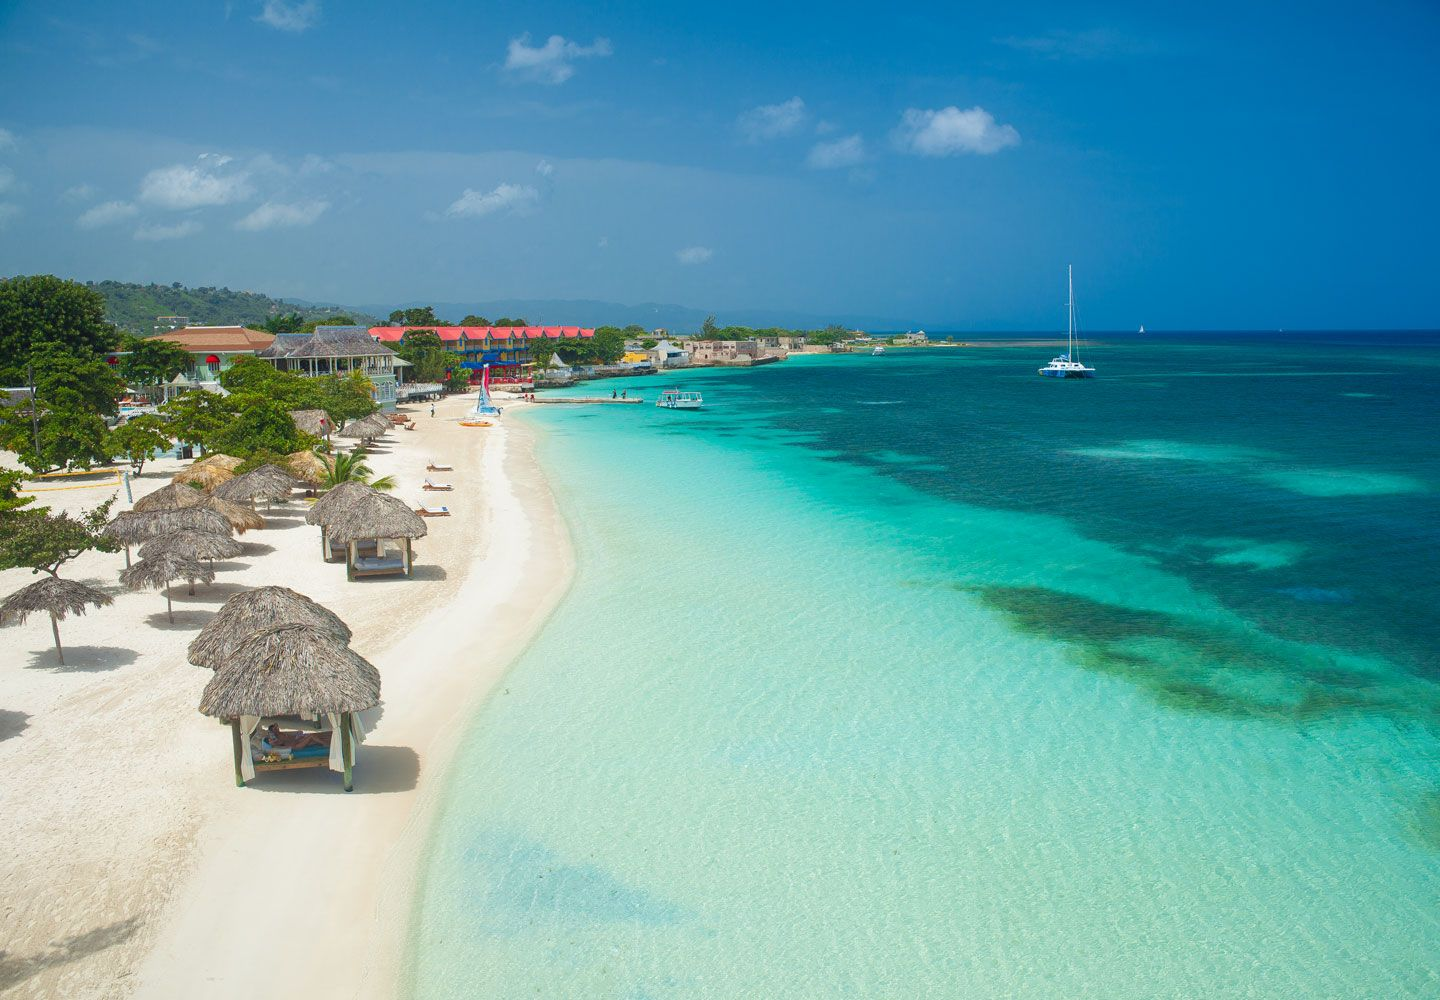 The Beach At Sandals Montego Bay On Caribbean Island Of Jamaica